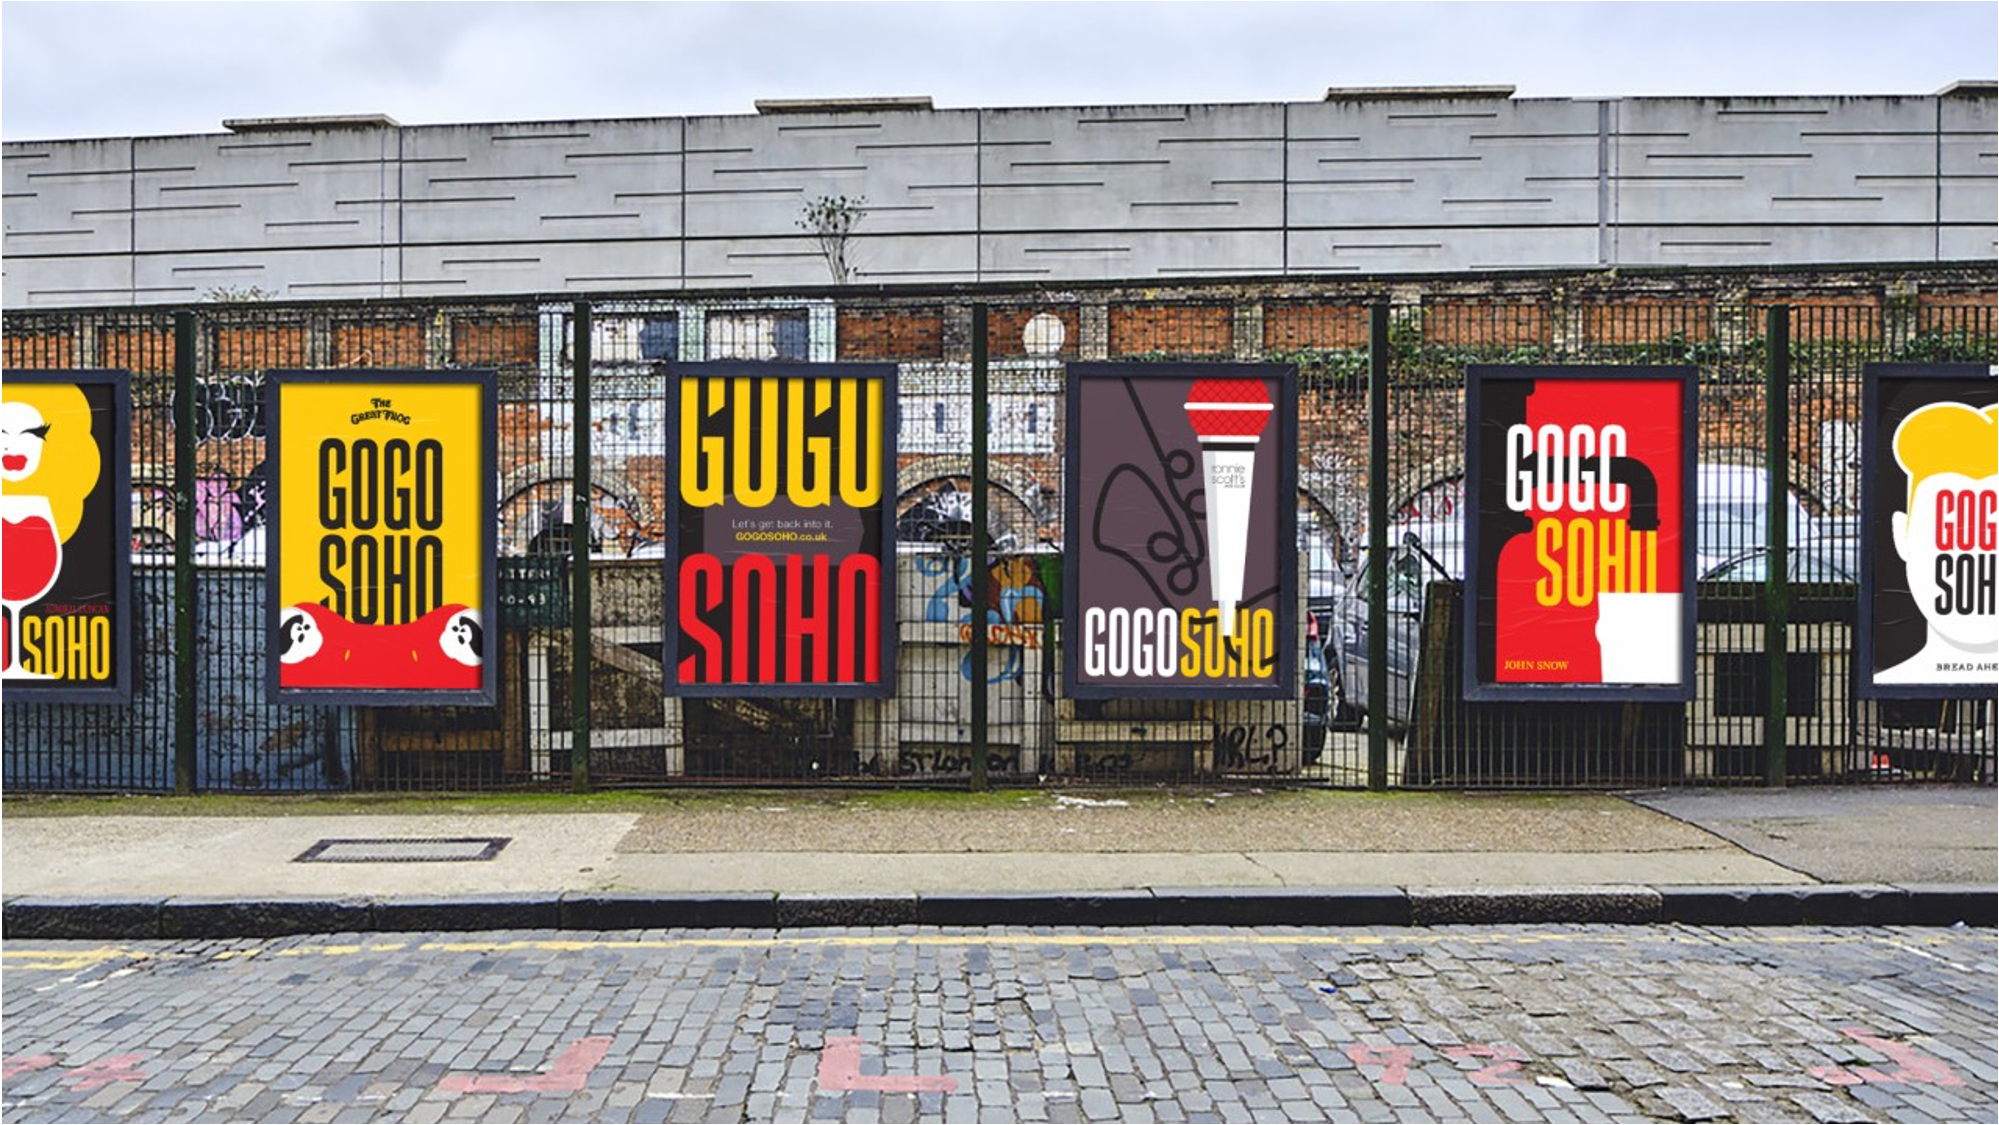 Series of 'GogoSoho' posters on a London street.